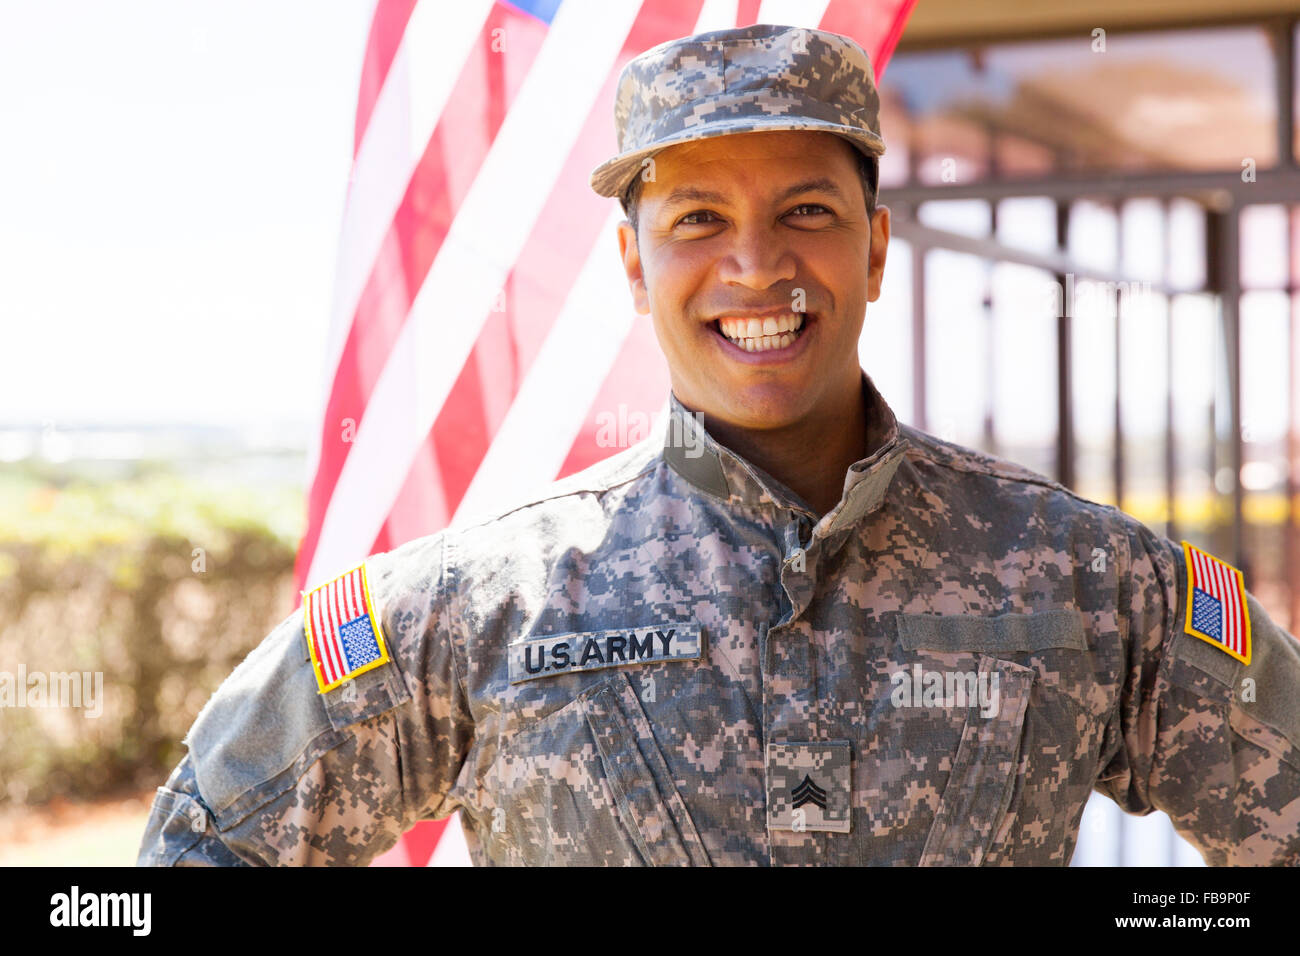 portrait of happy us army soldier outdoors - Stock Image